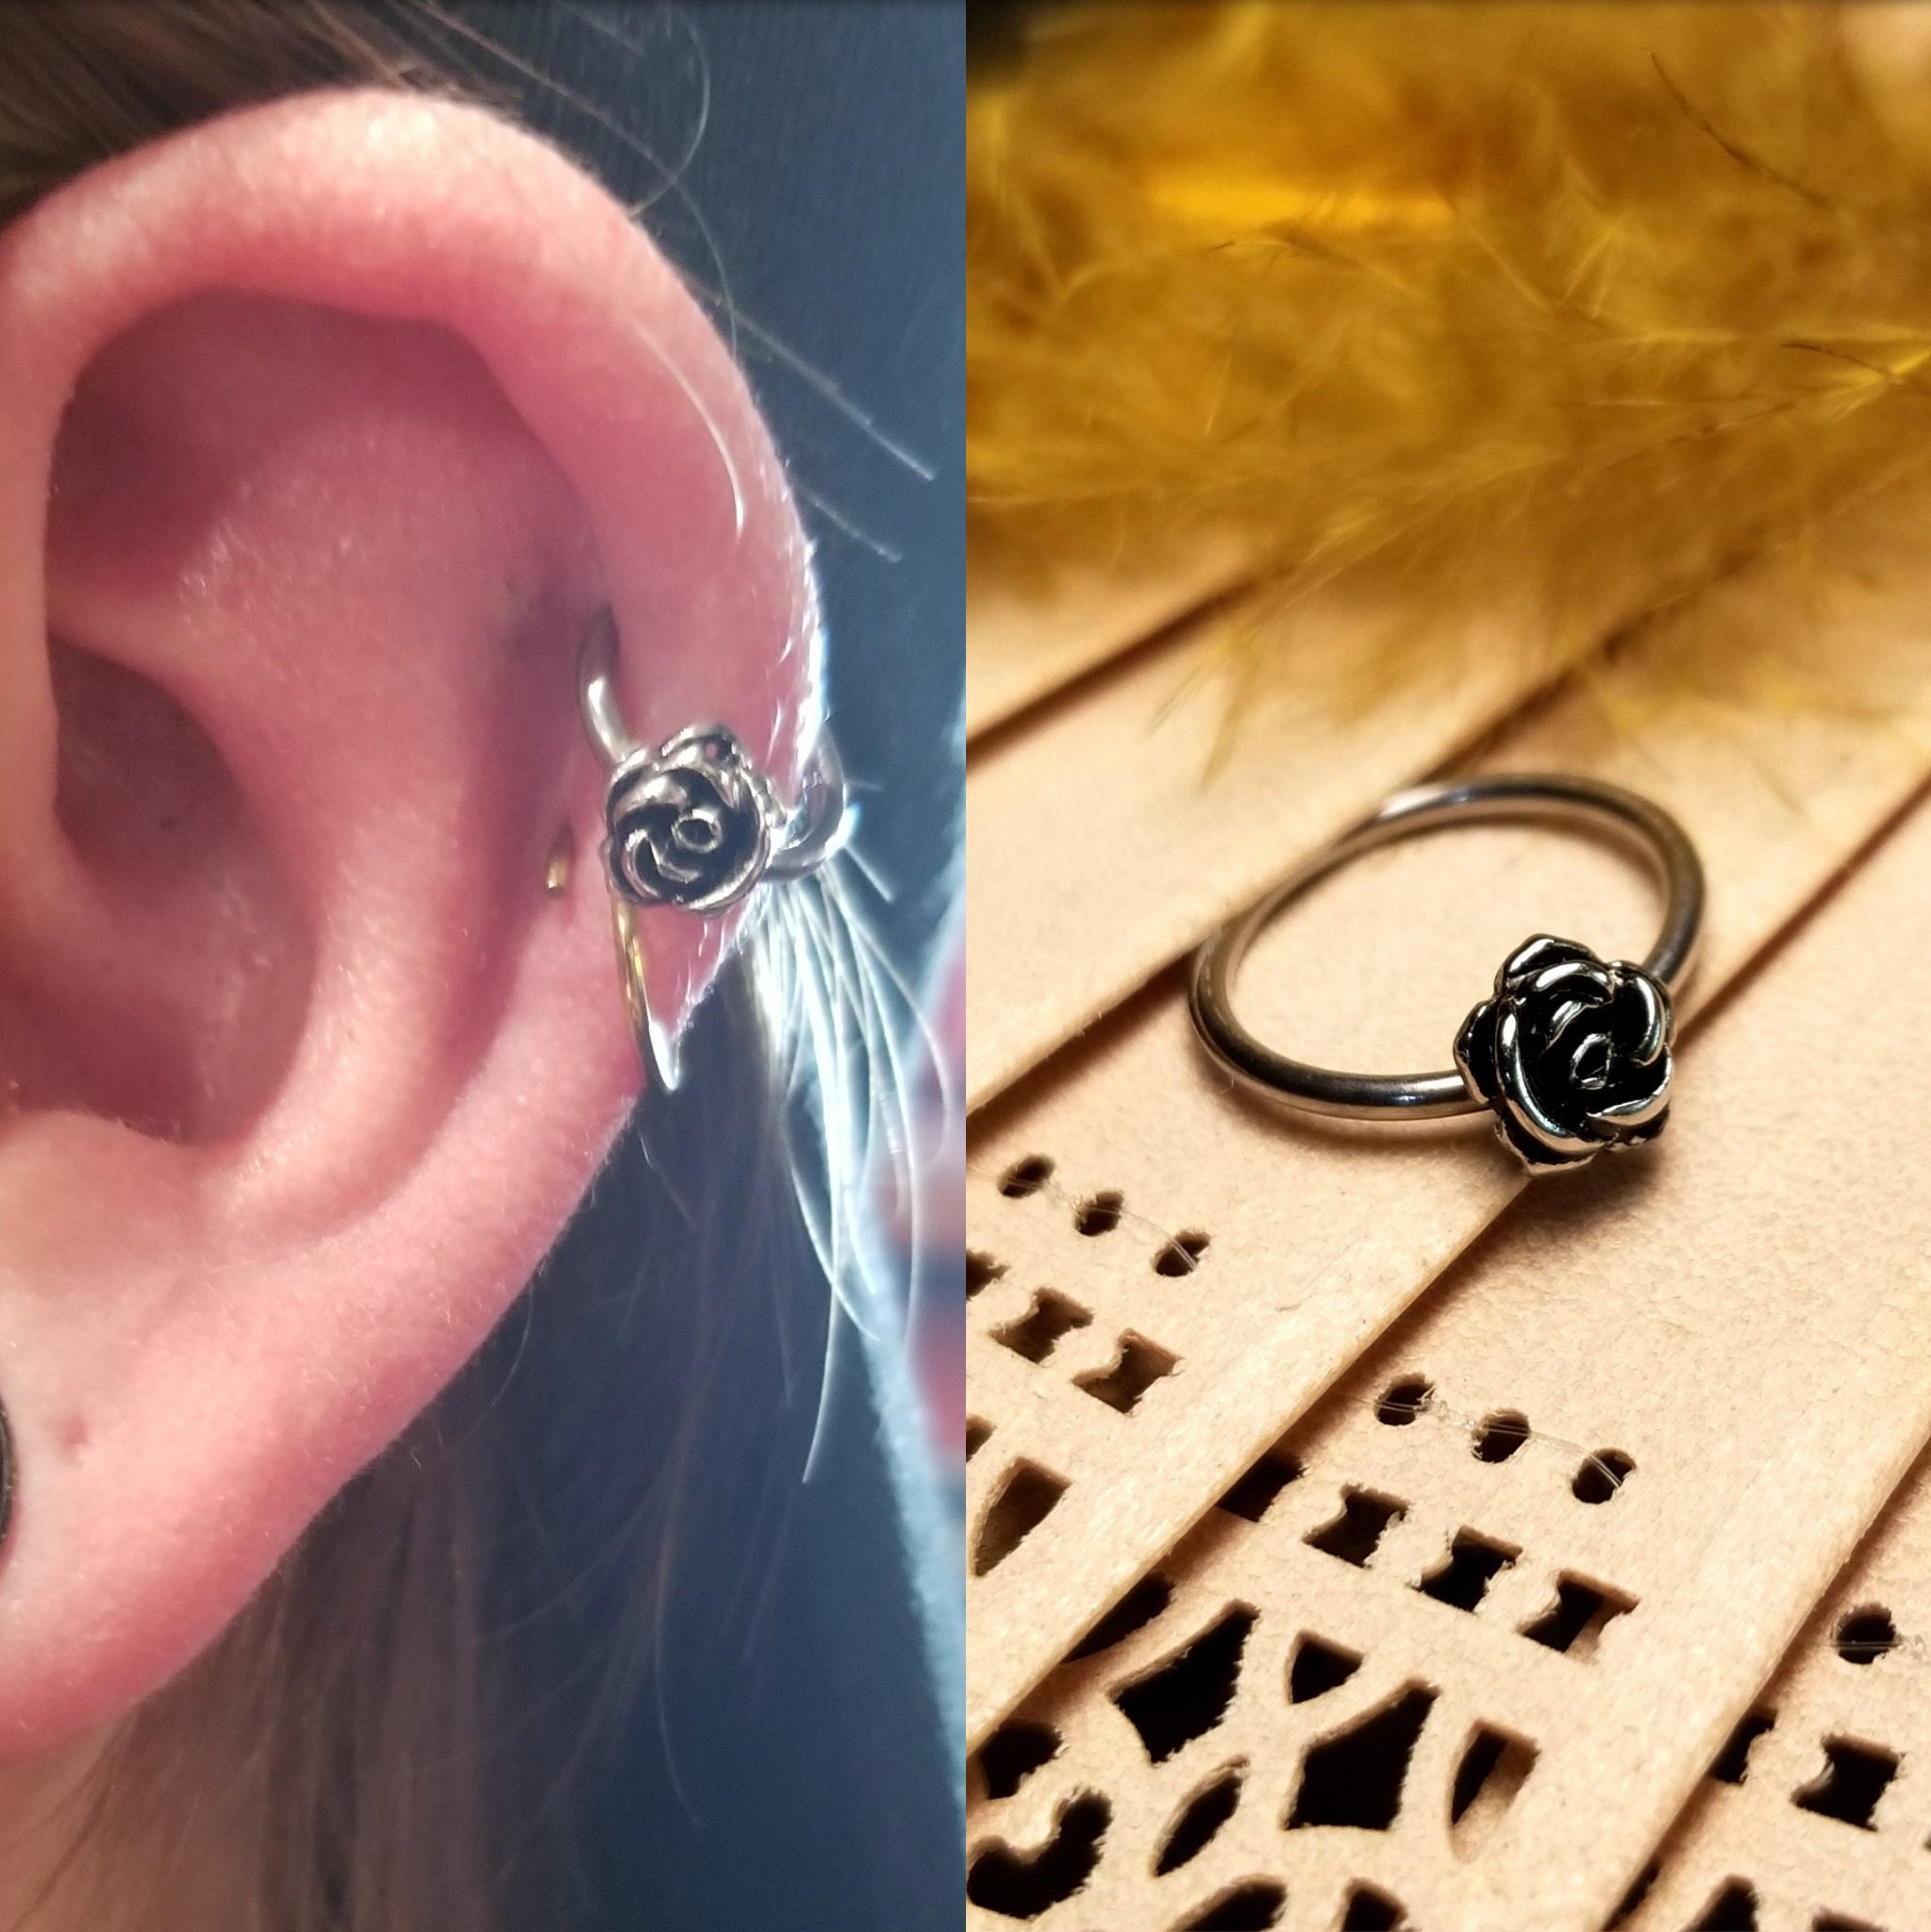 Orbital Inner Conch Silver Vintage Victorian Rose Steel Surgical 316l Hoop Earring Cartilage Helix Tragus Daith Ring 16g 18g